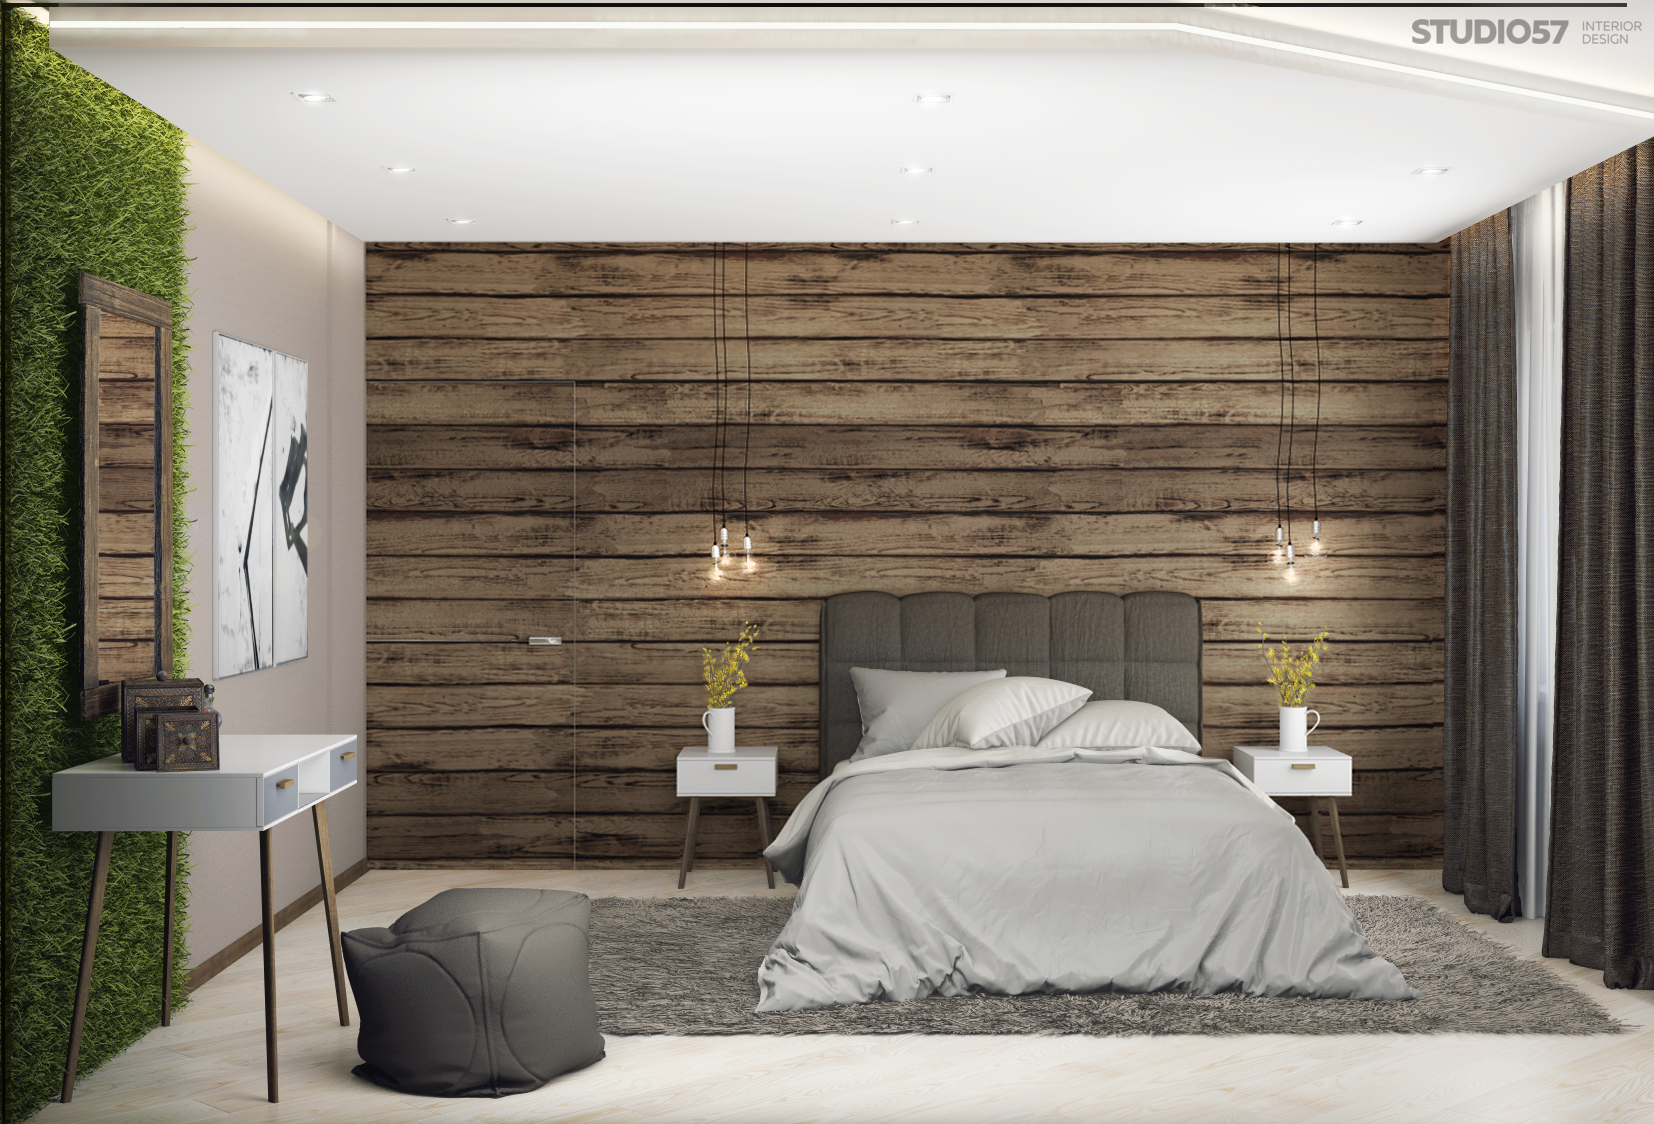 Bedroom in the style of Eco